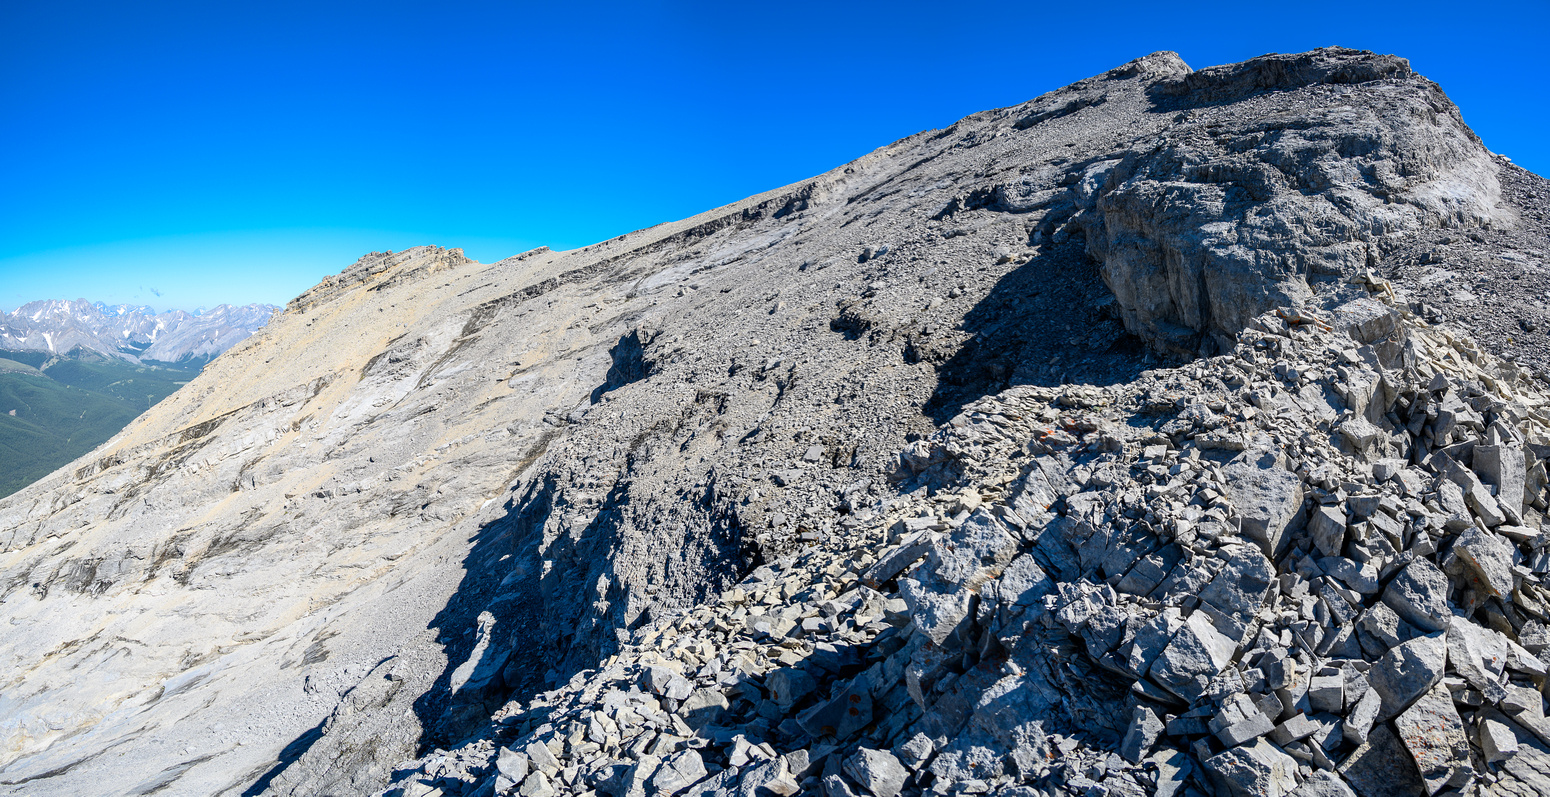 After a long traverse on slabs there is routefinding up the ridge proper to the false summit.